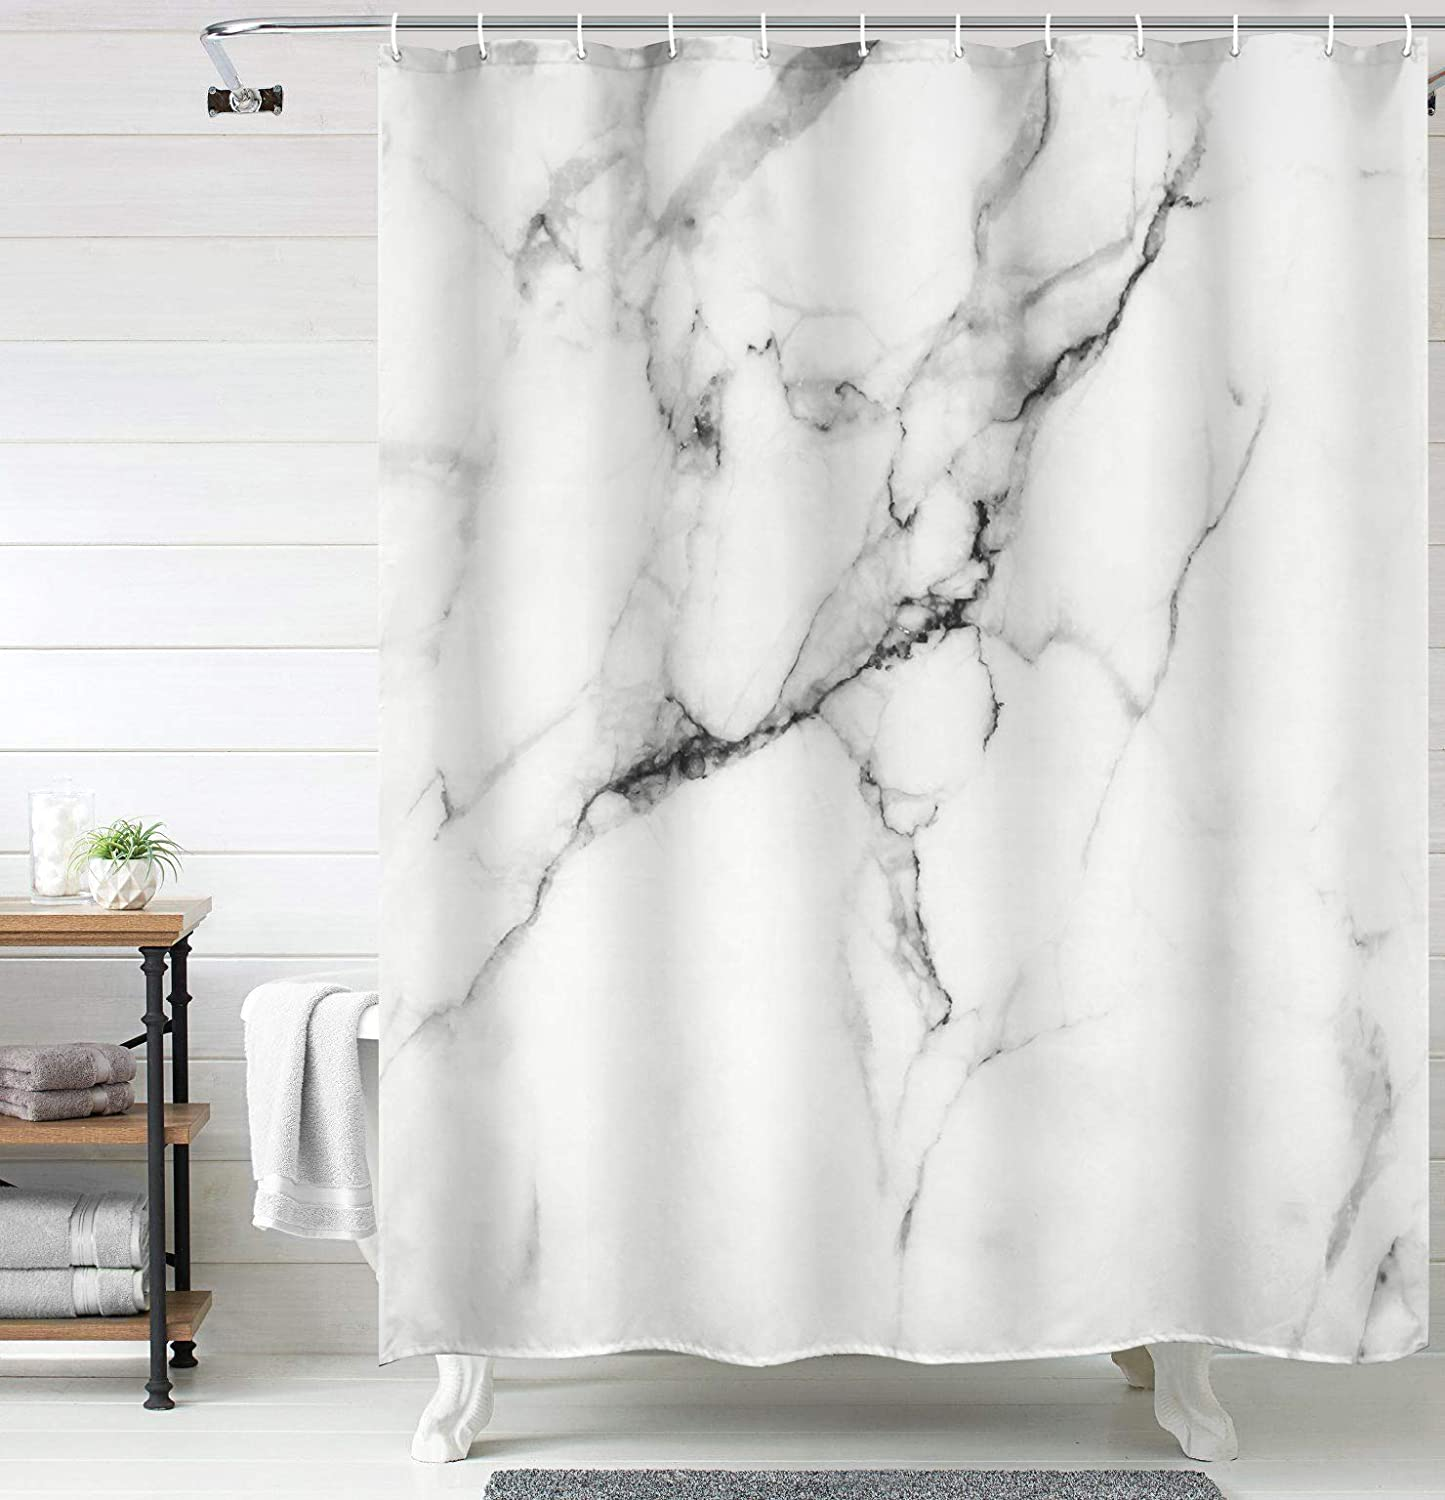 Uphome Marble Fabric Shower Curtain Extra Long White and Grey Cloth Shower Curtain Set Chic 3D Crack Design with Heavy Duty and Water Repellent Modern Bathroom Hotel Bathtub Decor 72x75